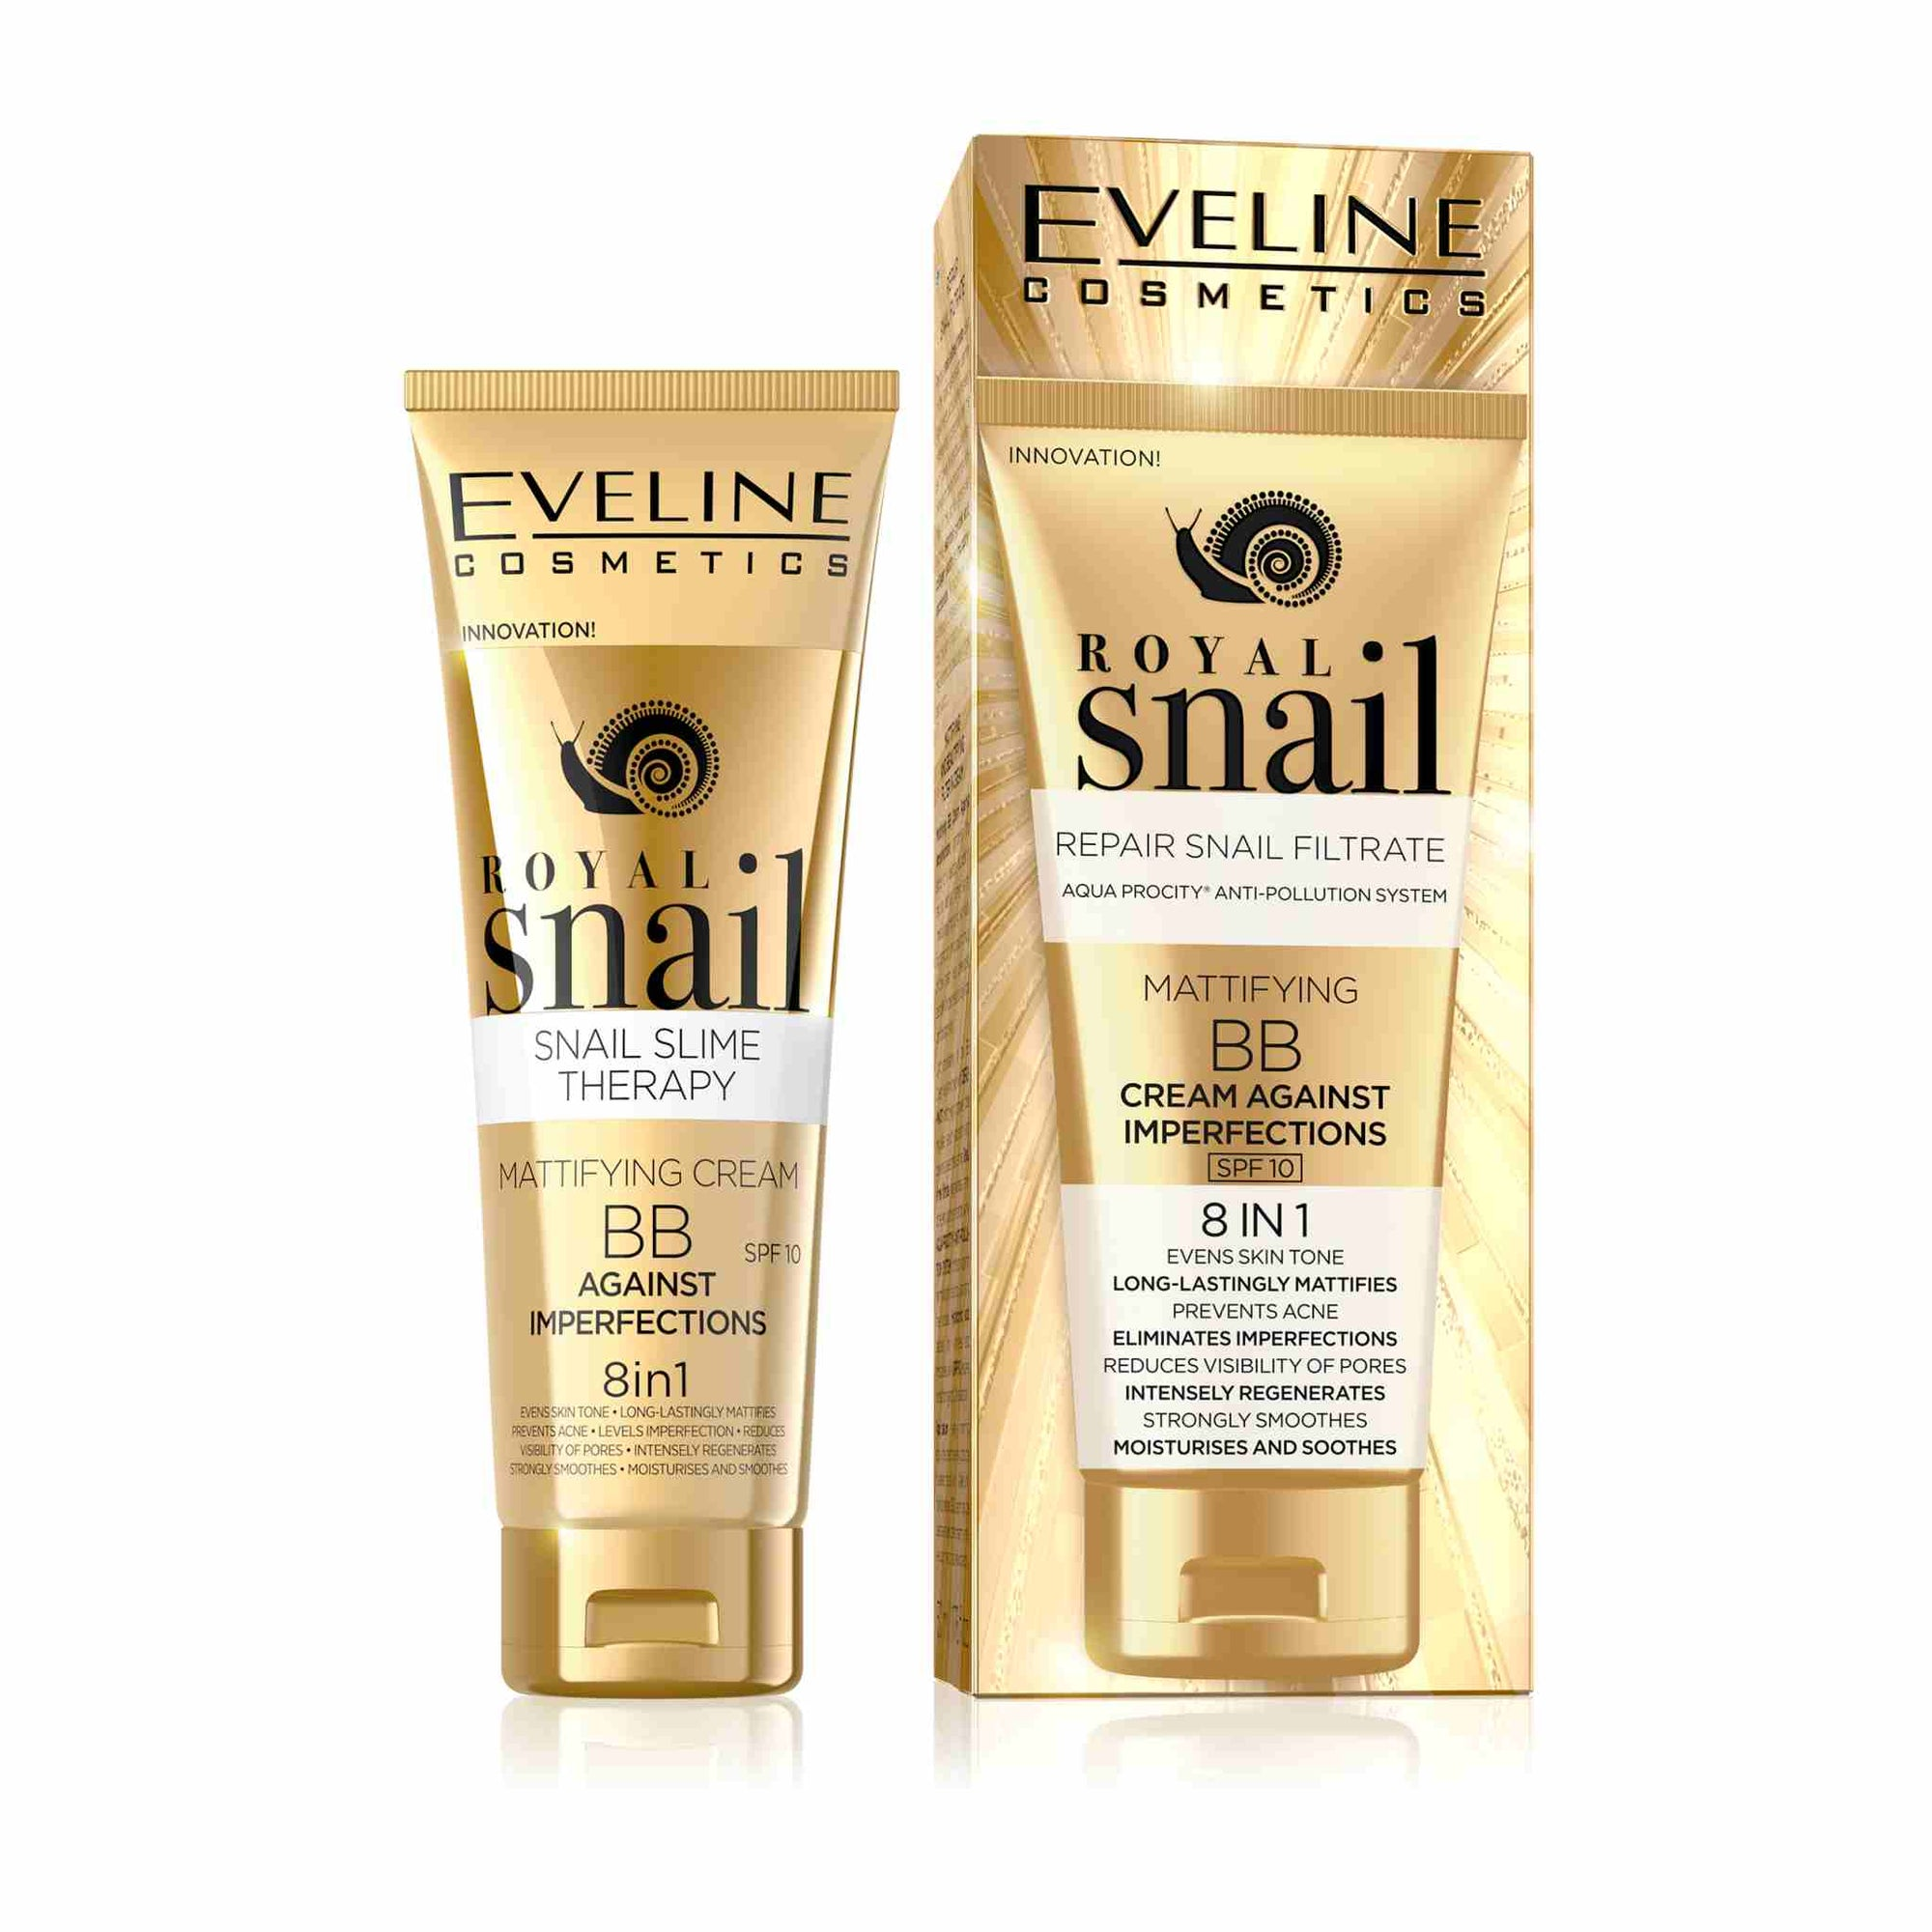 Royal Snail Mattifying BB Cream Against Imperfections SPF 10